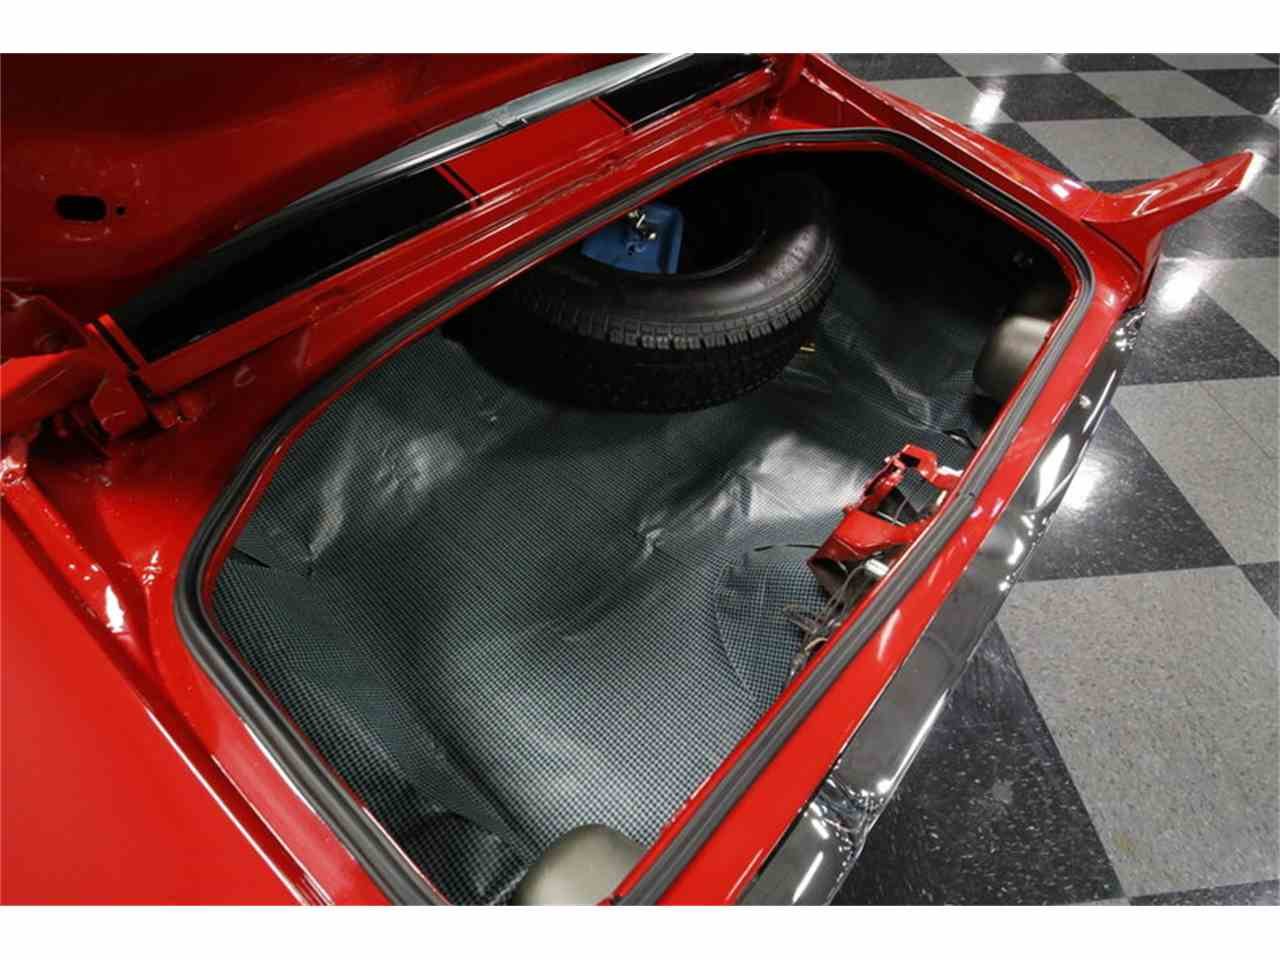 Large Picture of '71 Chevrolet Camaro Z28 located in North Carolina - $43,995.00 Offered by Streetside Classics - Charlotte - MC8K